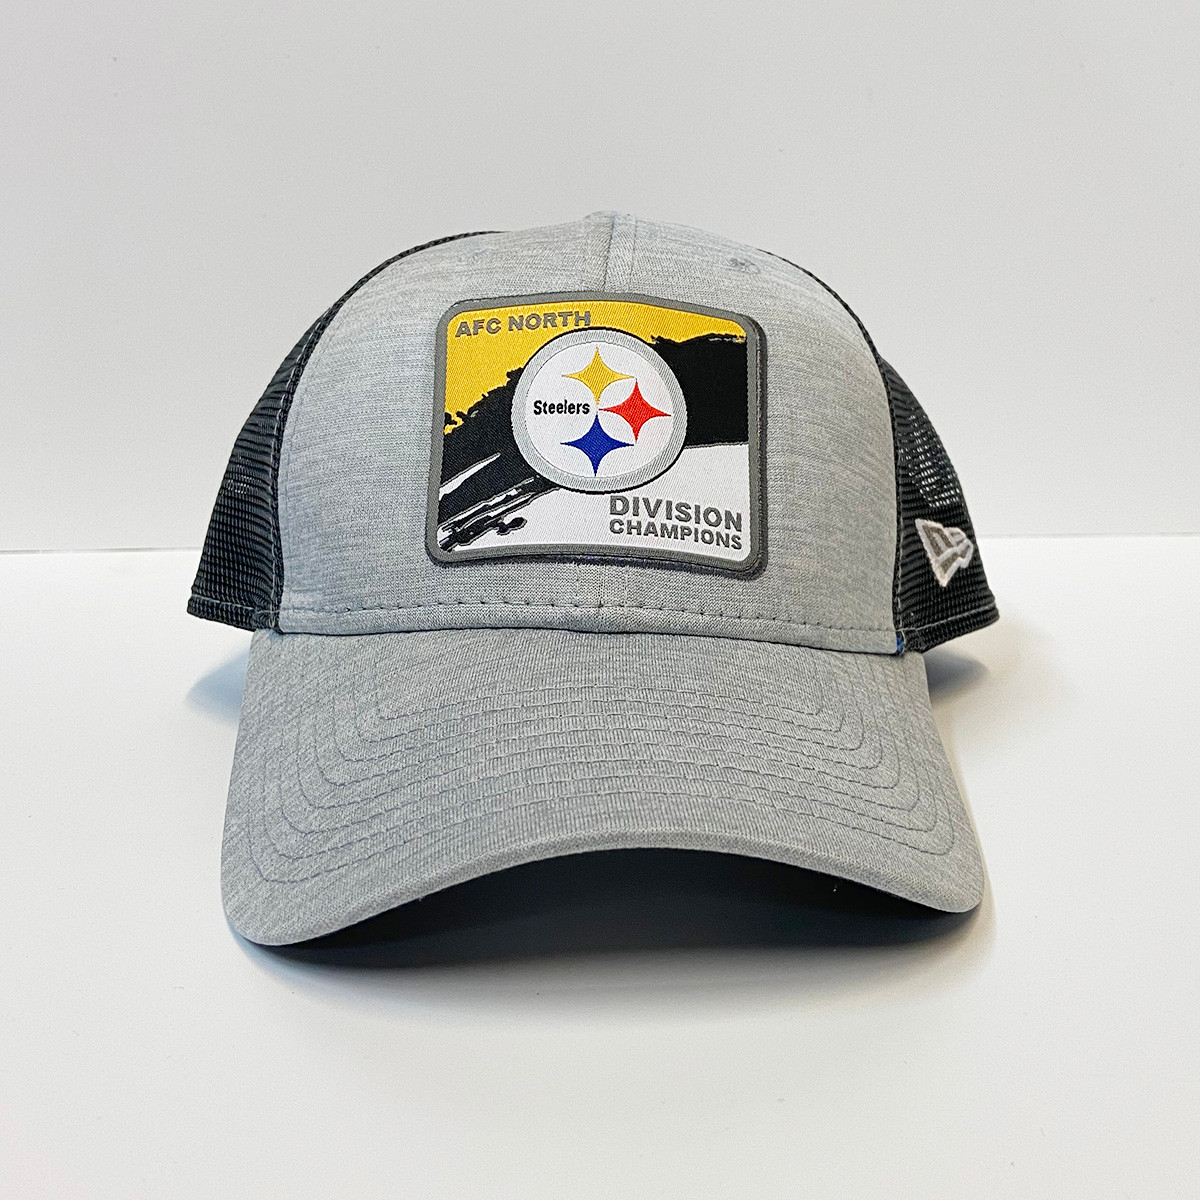 2020 Steelers AFC North Division Champions Mesh Hat